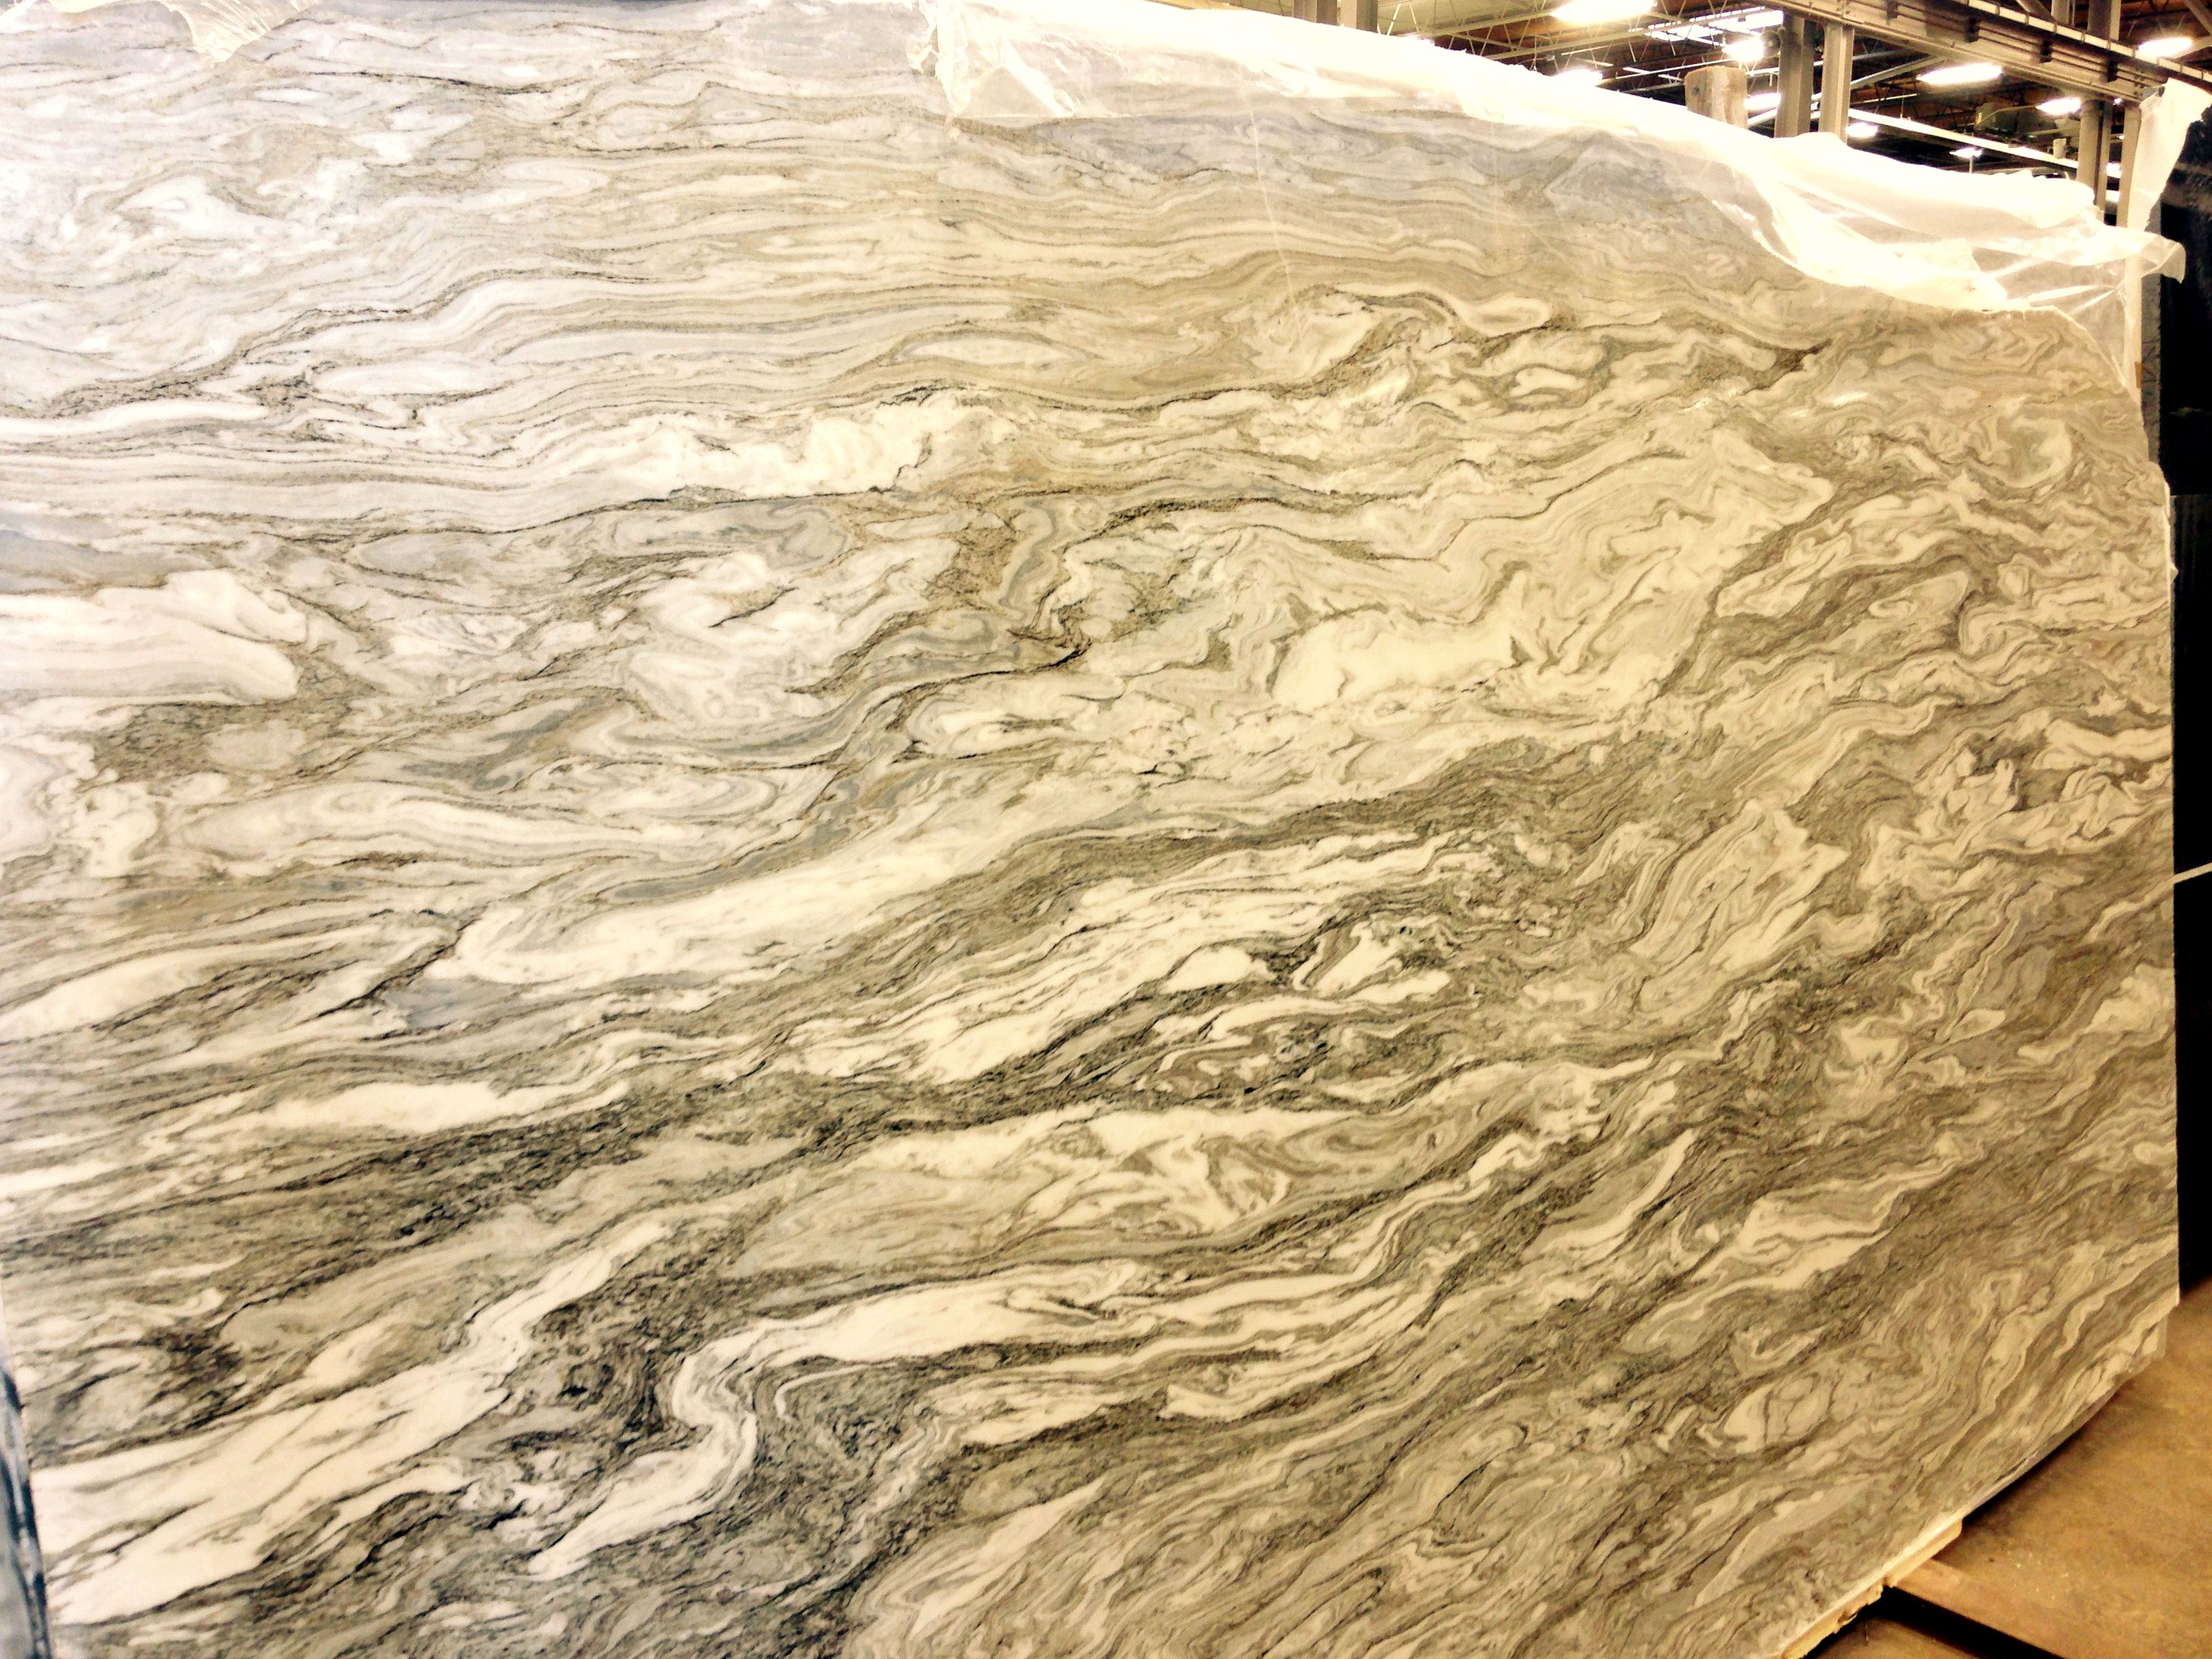 Faqs about granite, marble, onyx, travertine, quarta movement countertops We advise always using